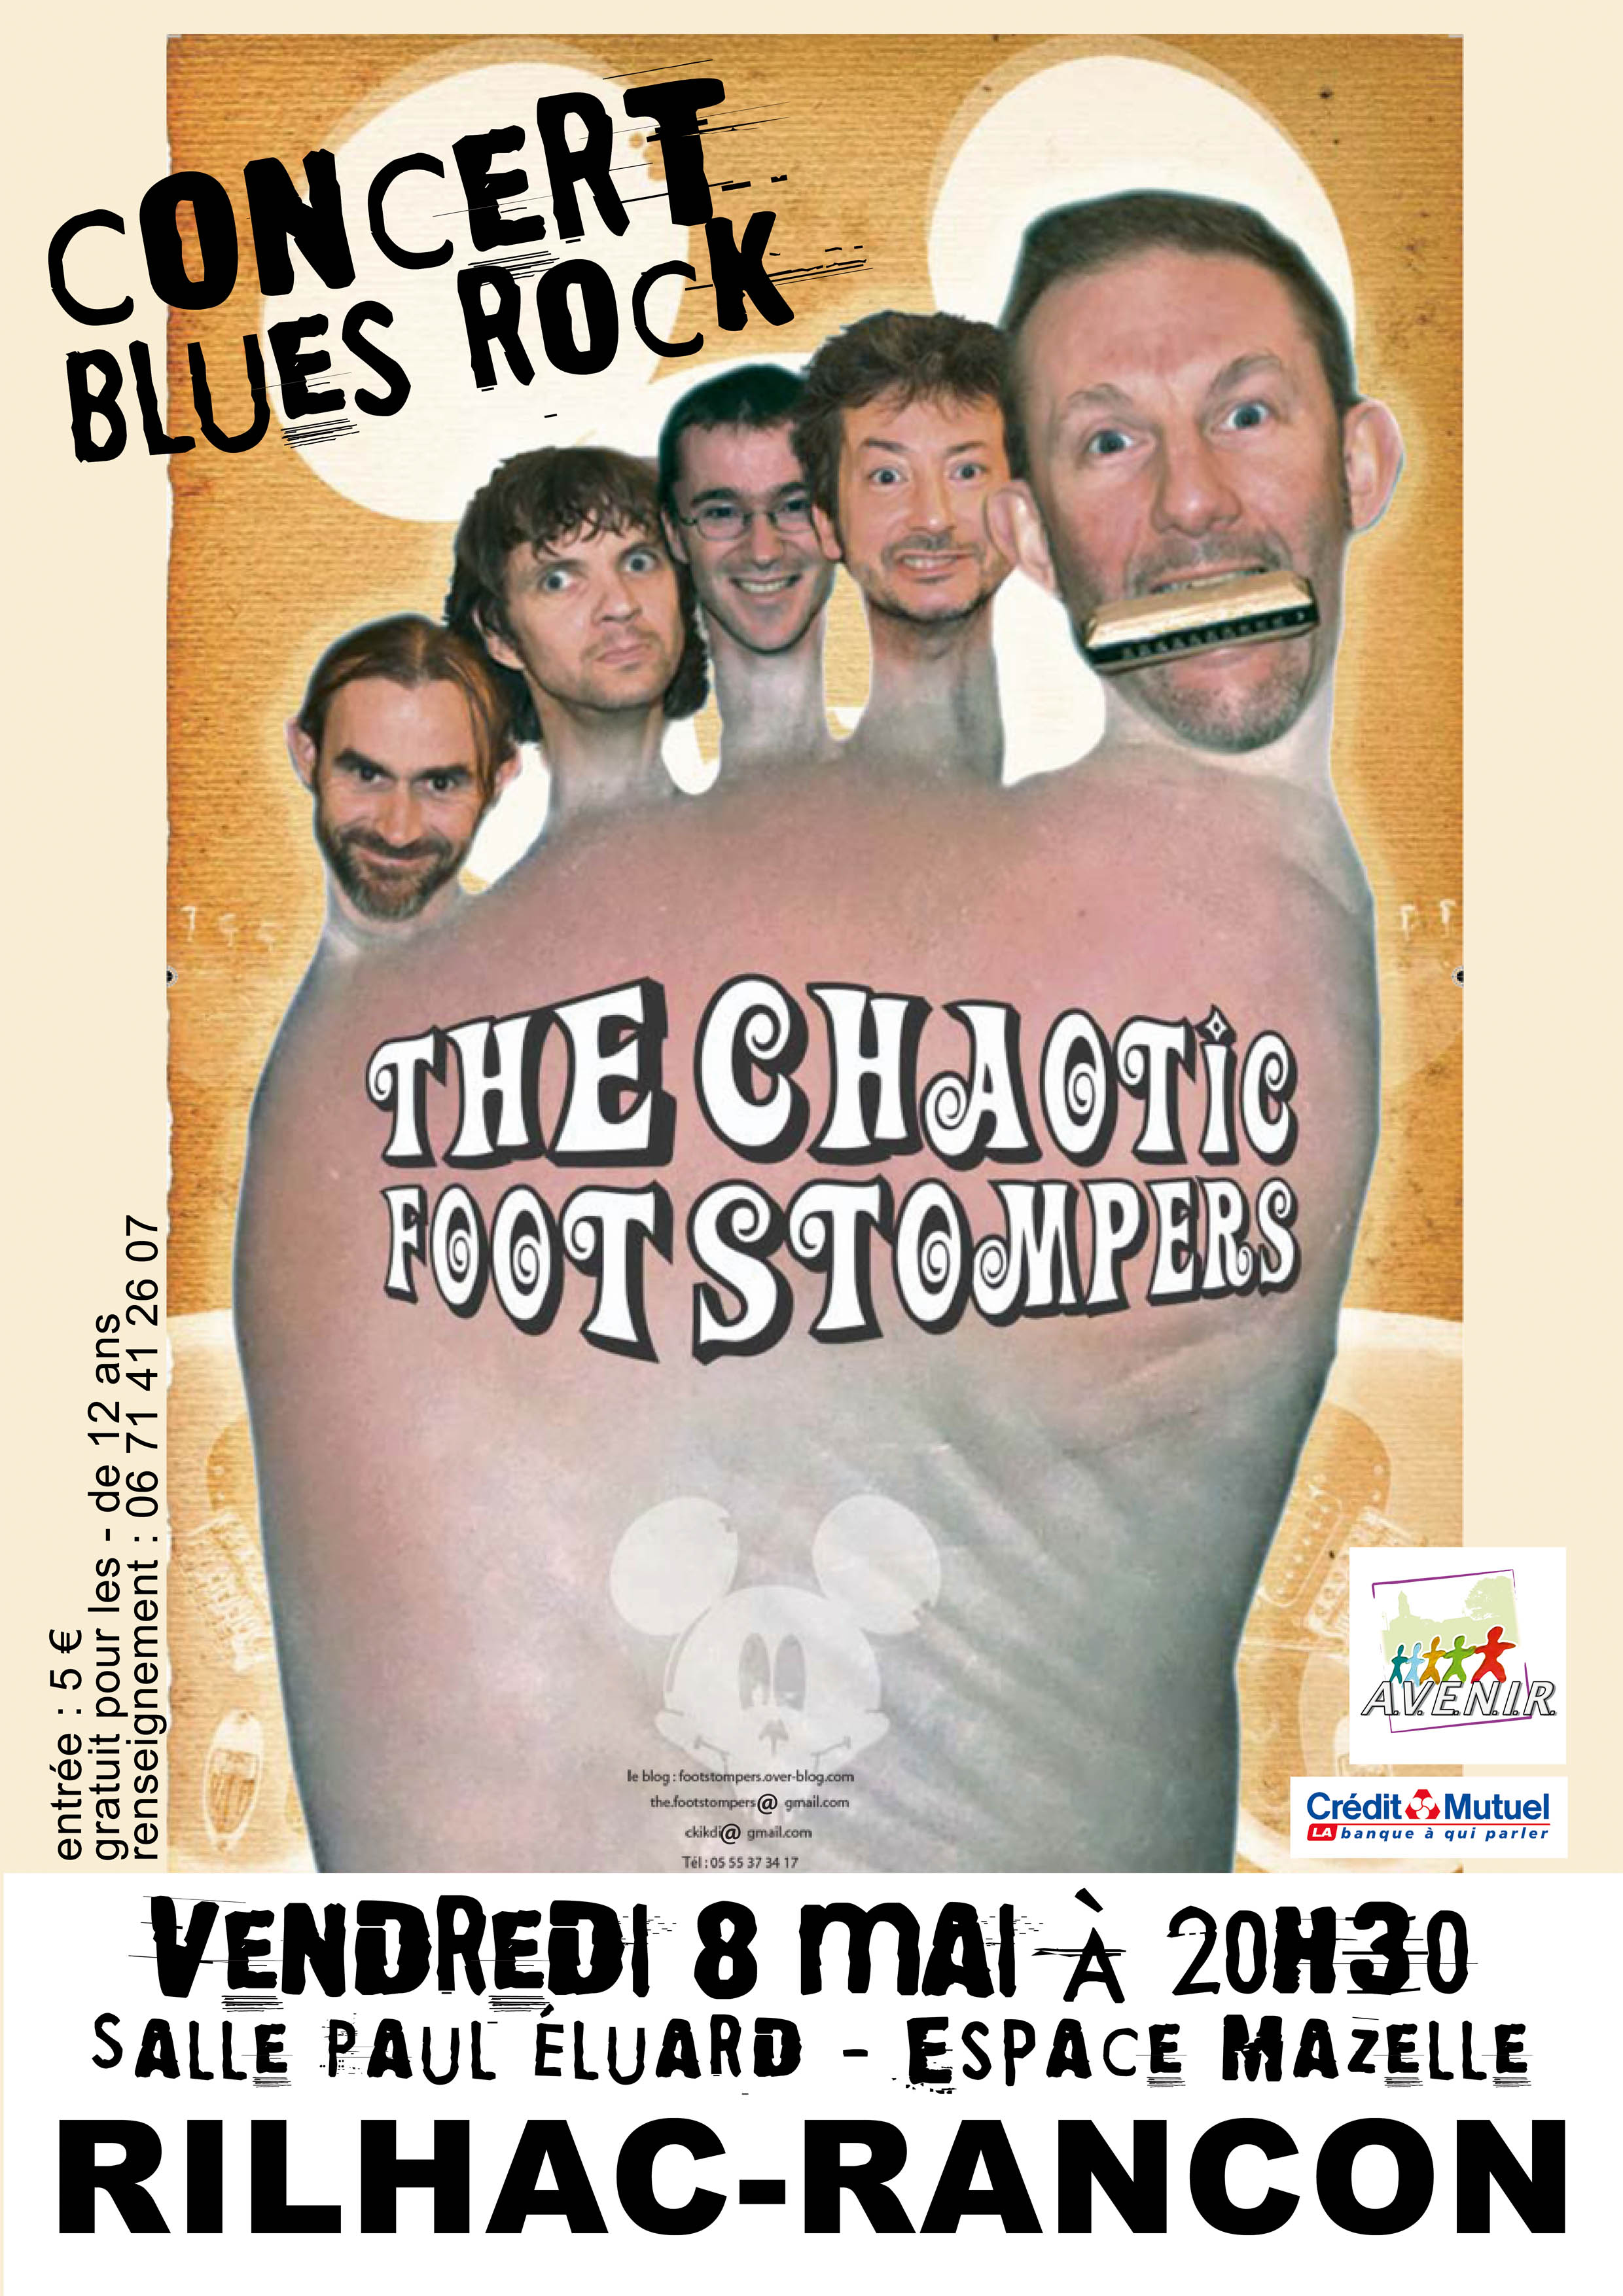 The Chaotic Footstompers